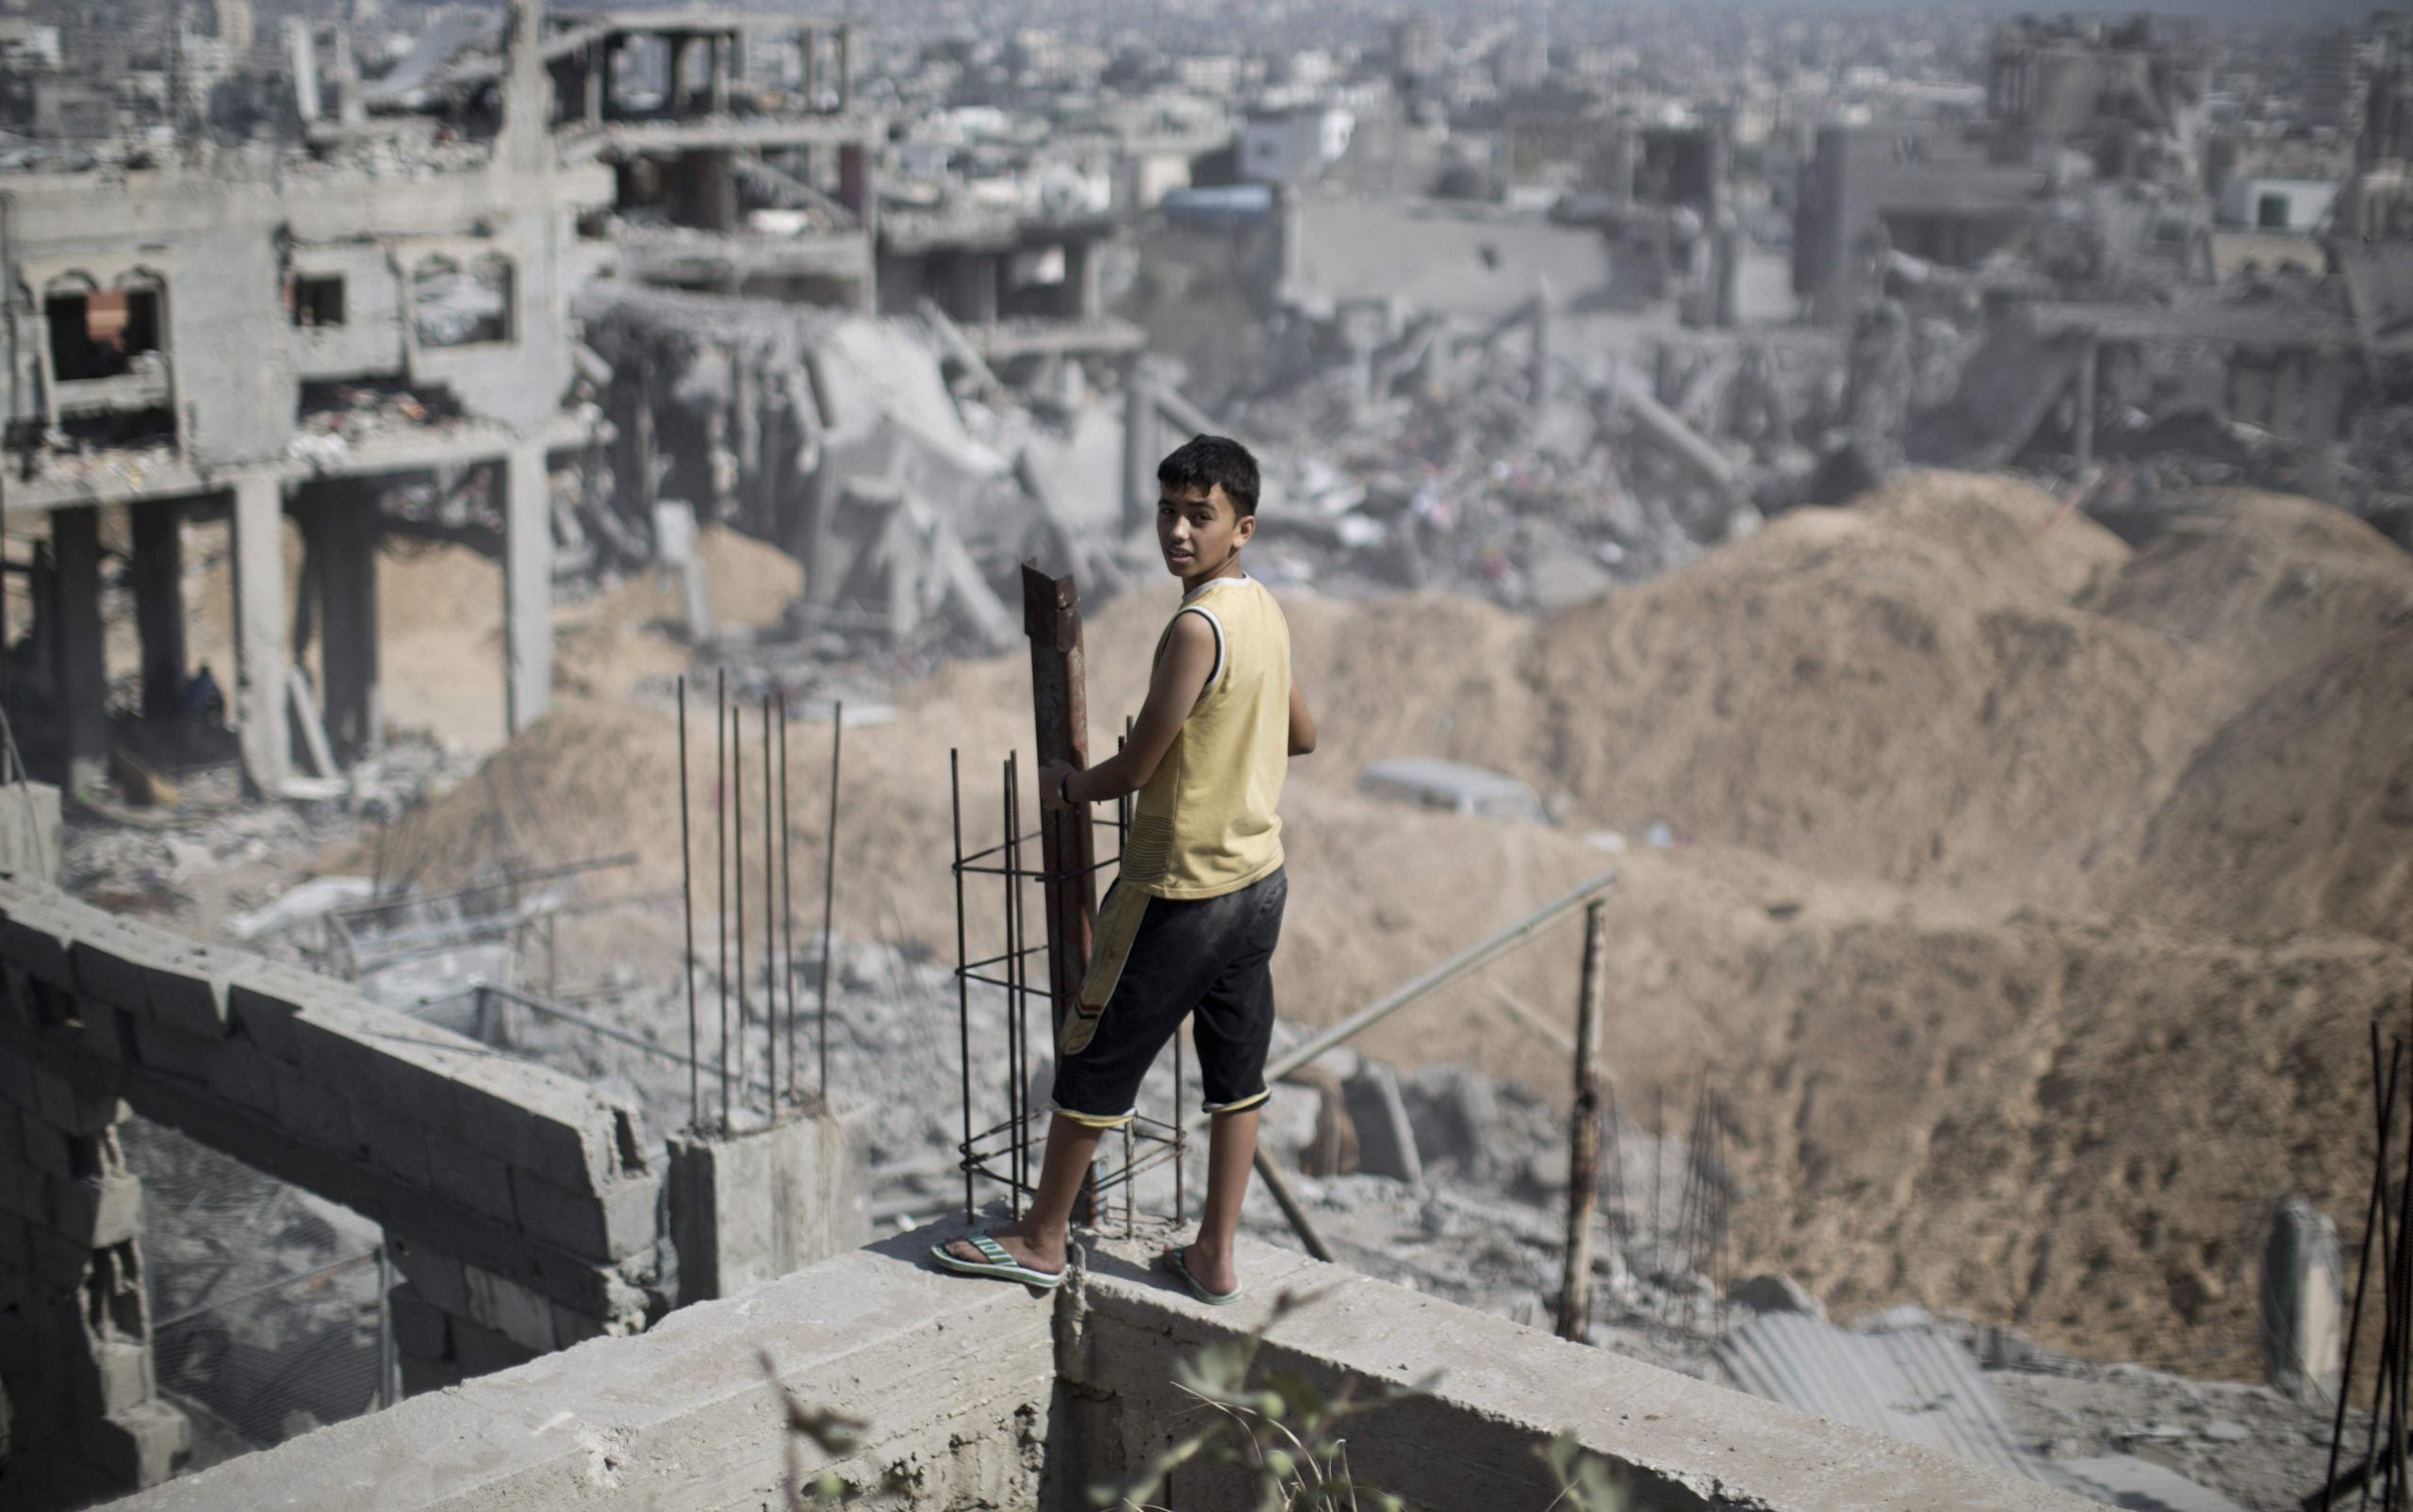 Conflict in Gaza is all part of Israel's indirect system of control over Palestinians